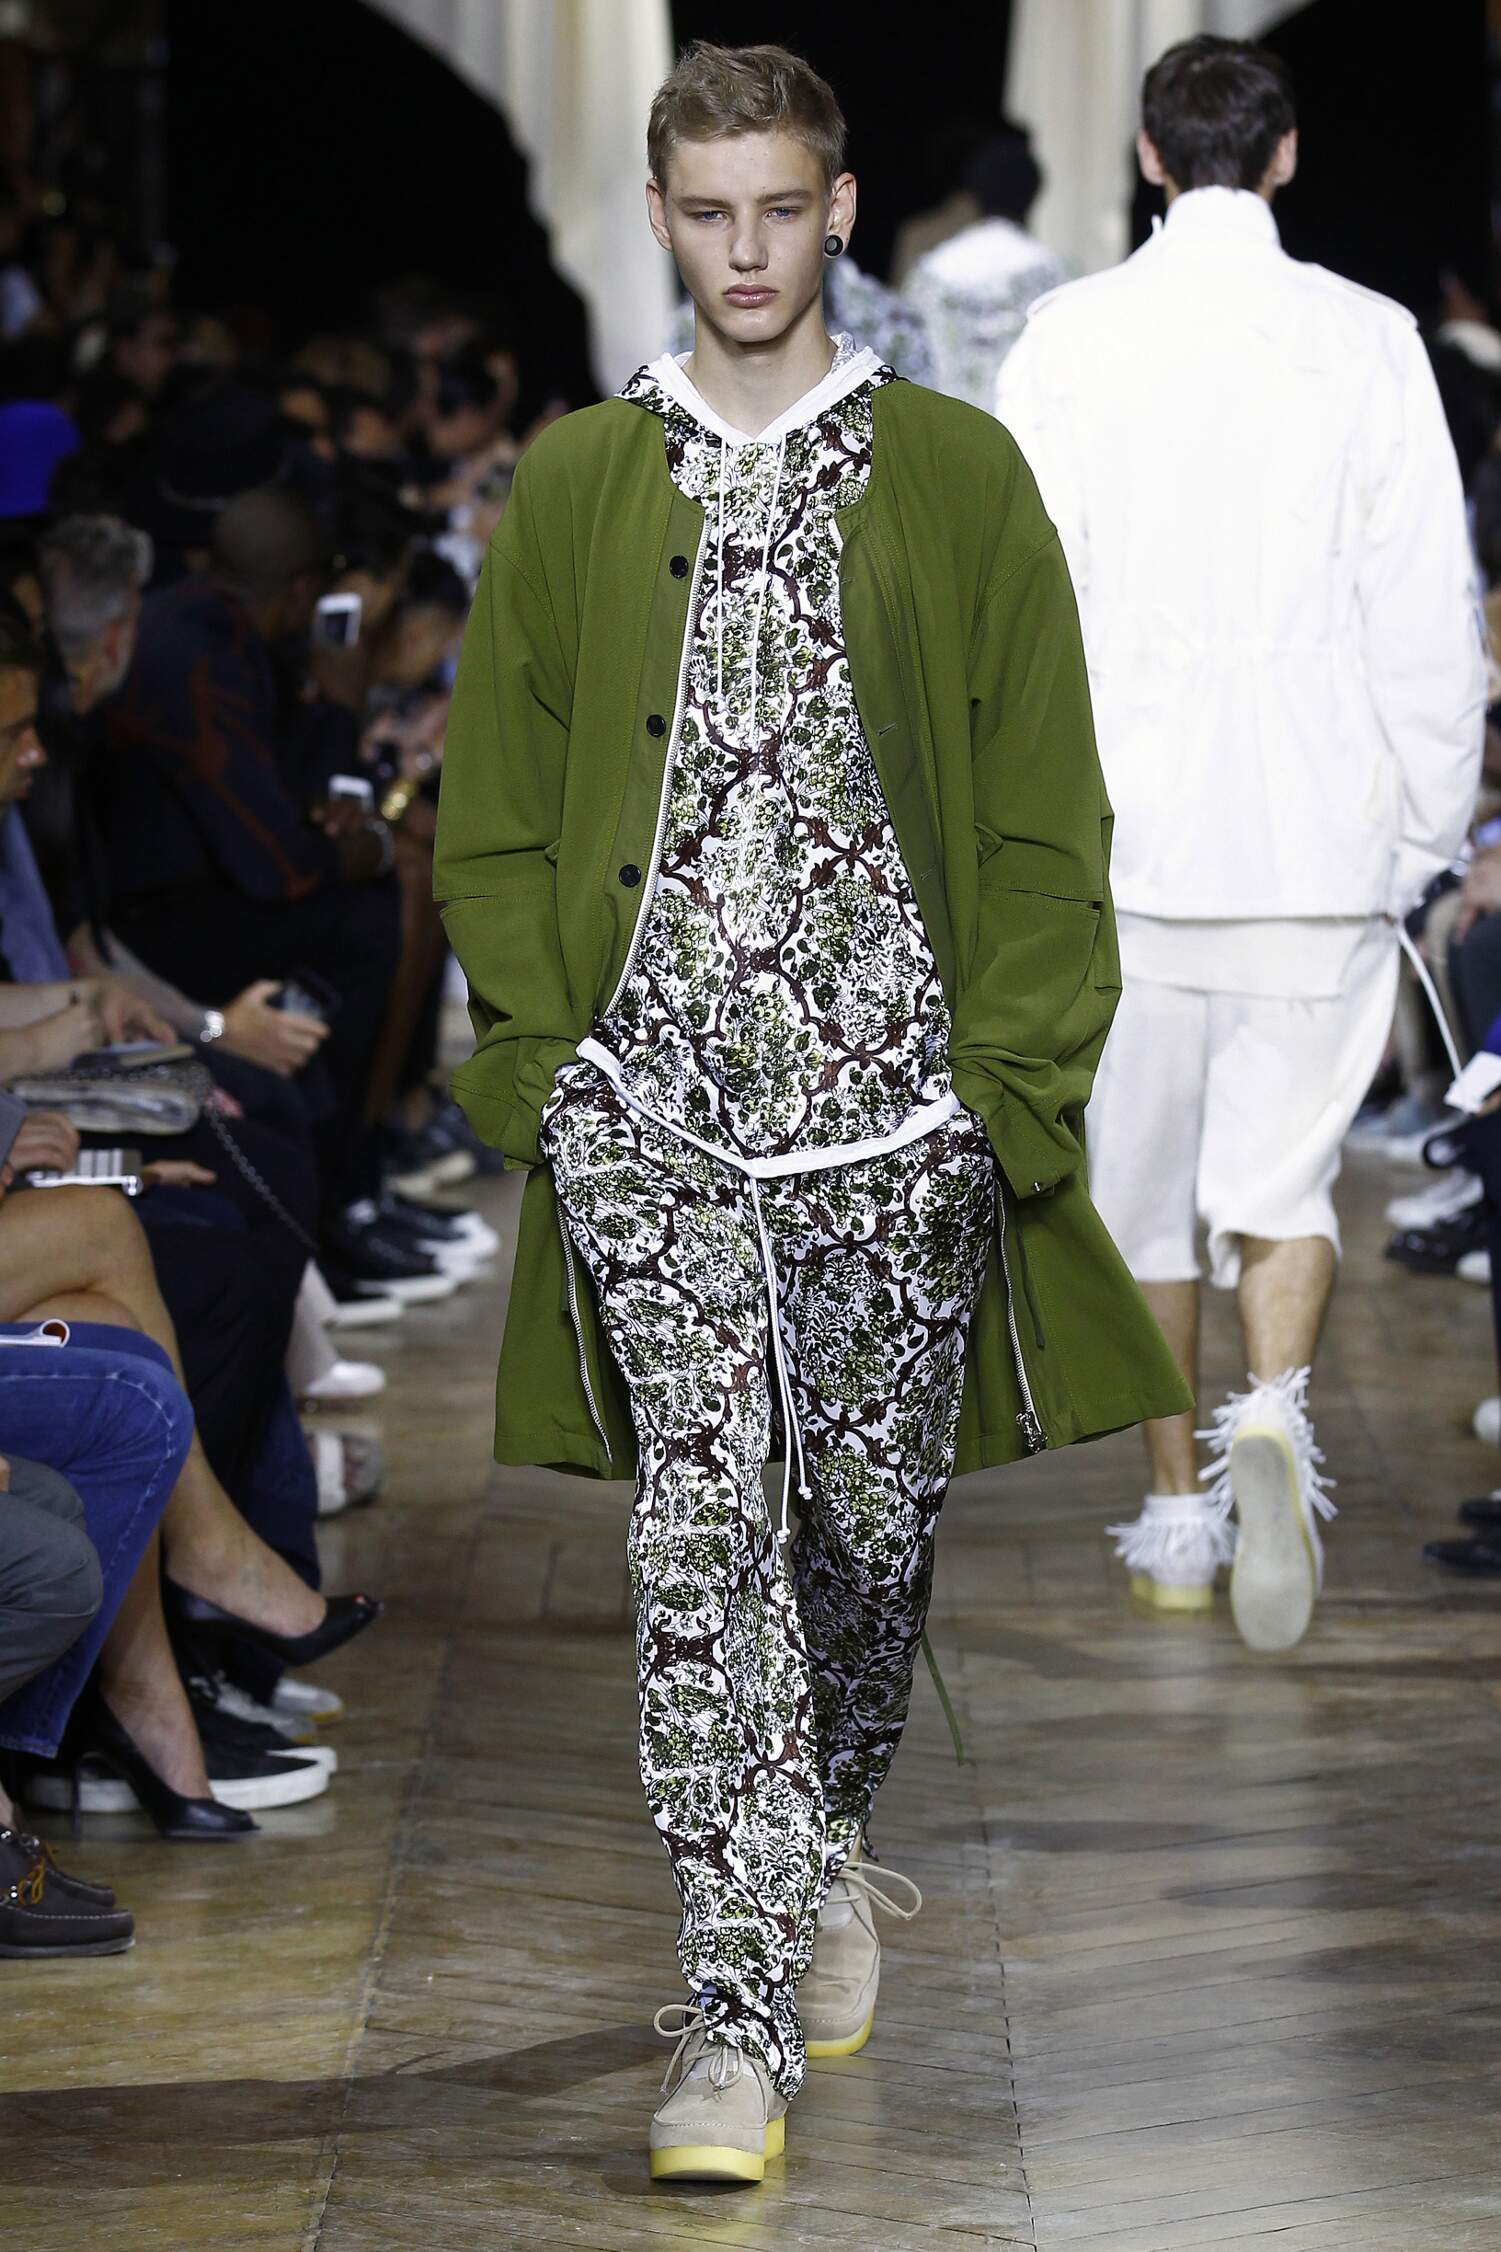 Catwalk Phillip Lim Spring Summer 2016 Men's Collection Paris Fashion Week